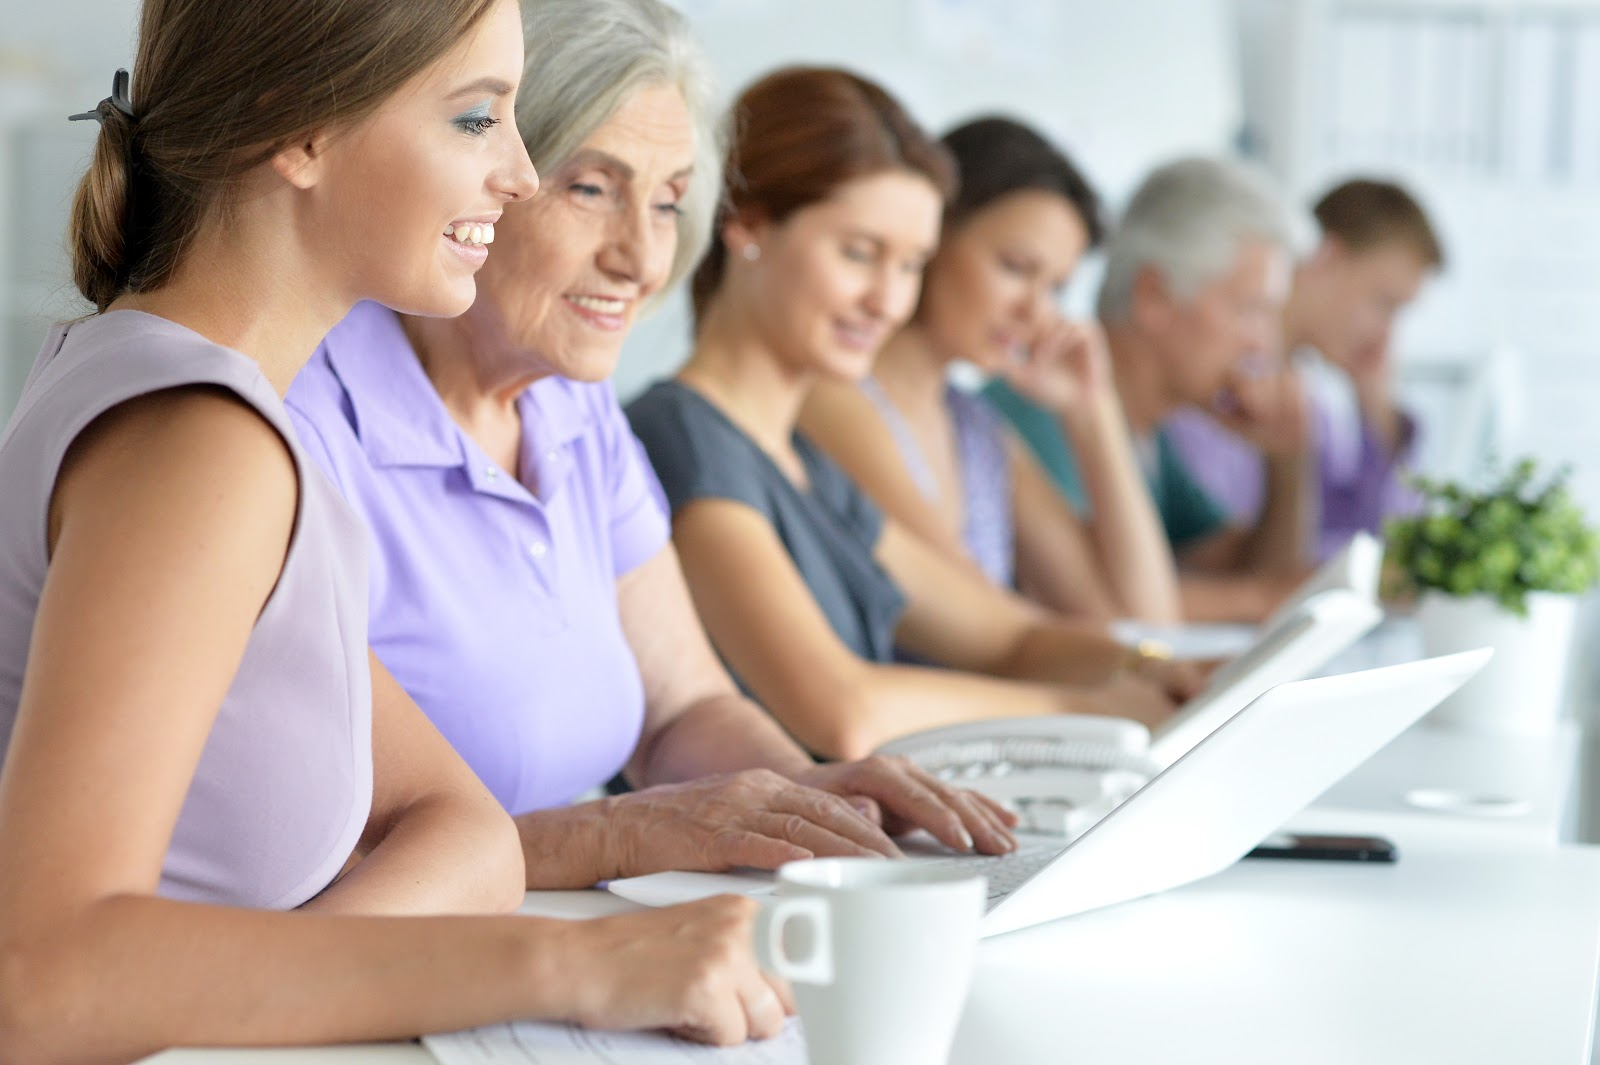 Women working at a shared desk space